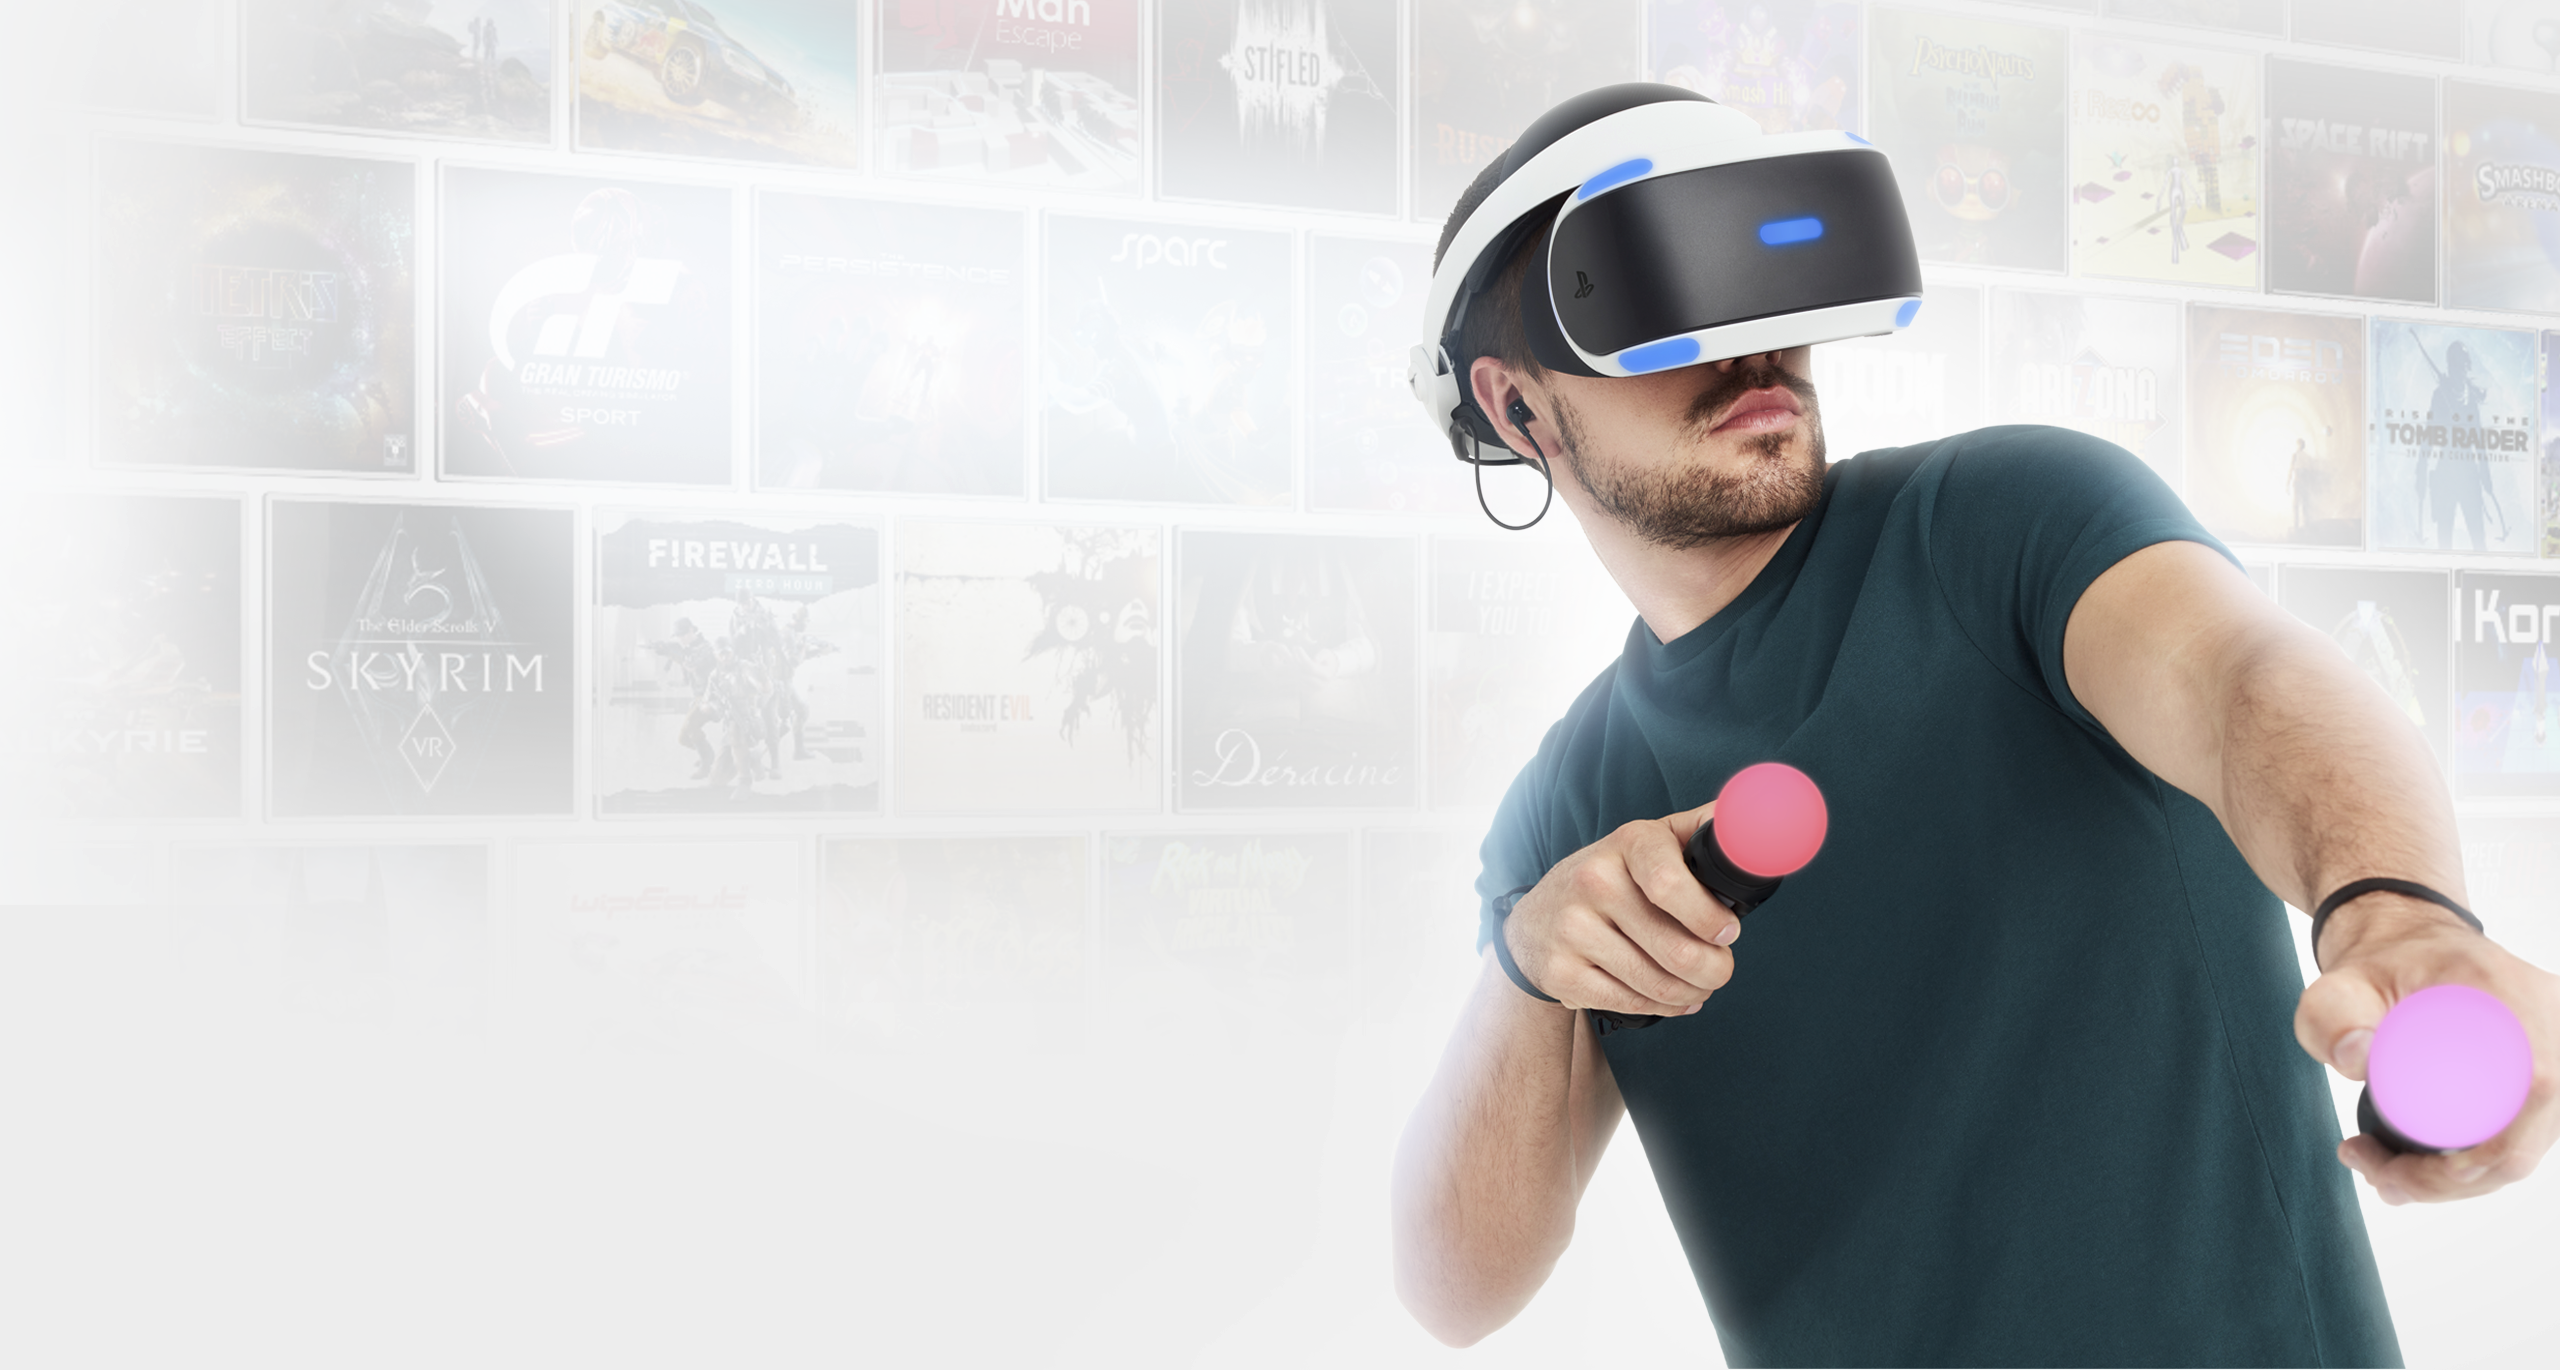 PlayStation VR promosyon görseli